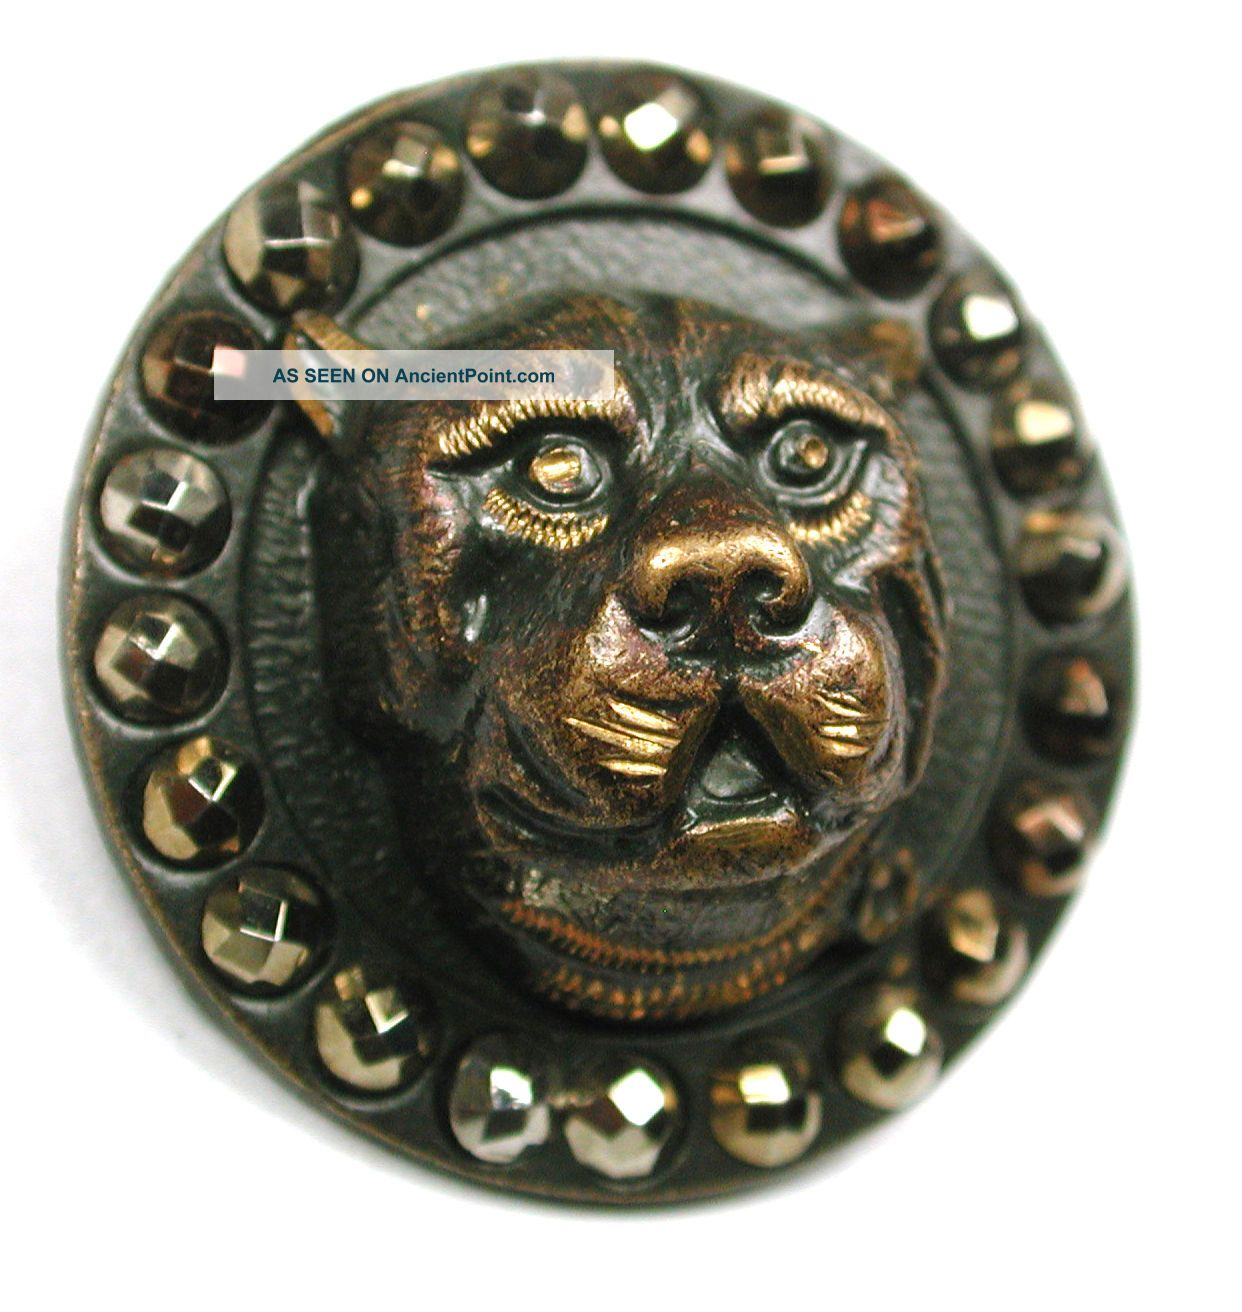 Antique Brass Button Dimensional Boxer Dog Head W/ Cut Steel Border - 15/16